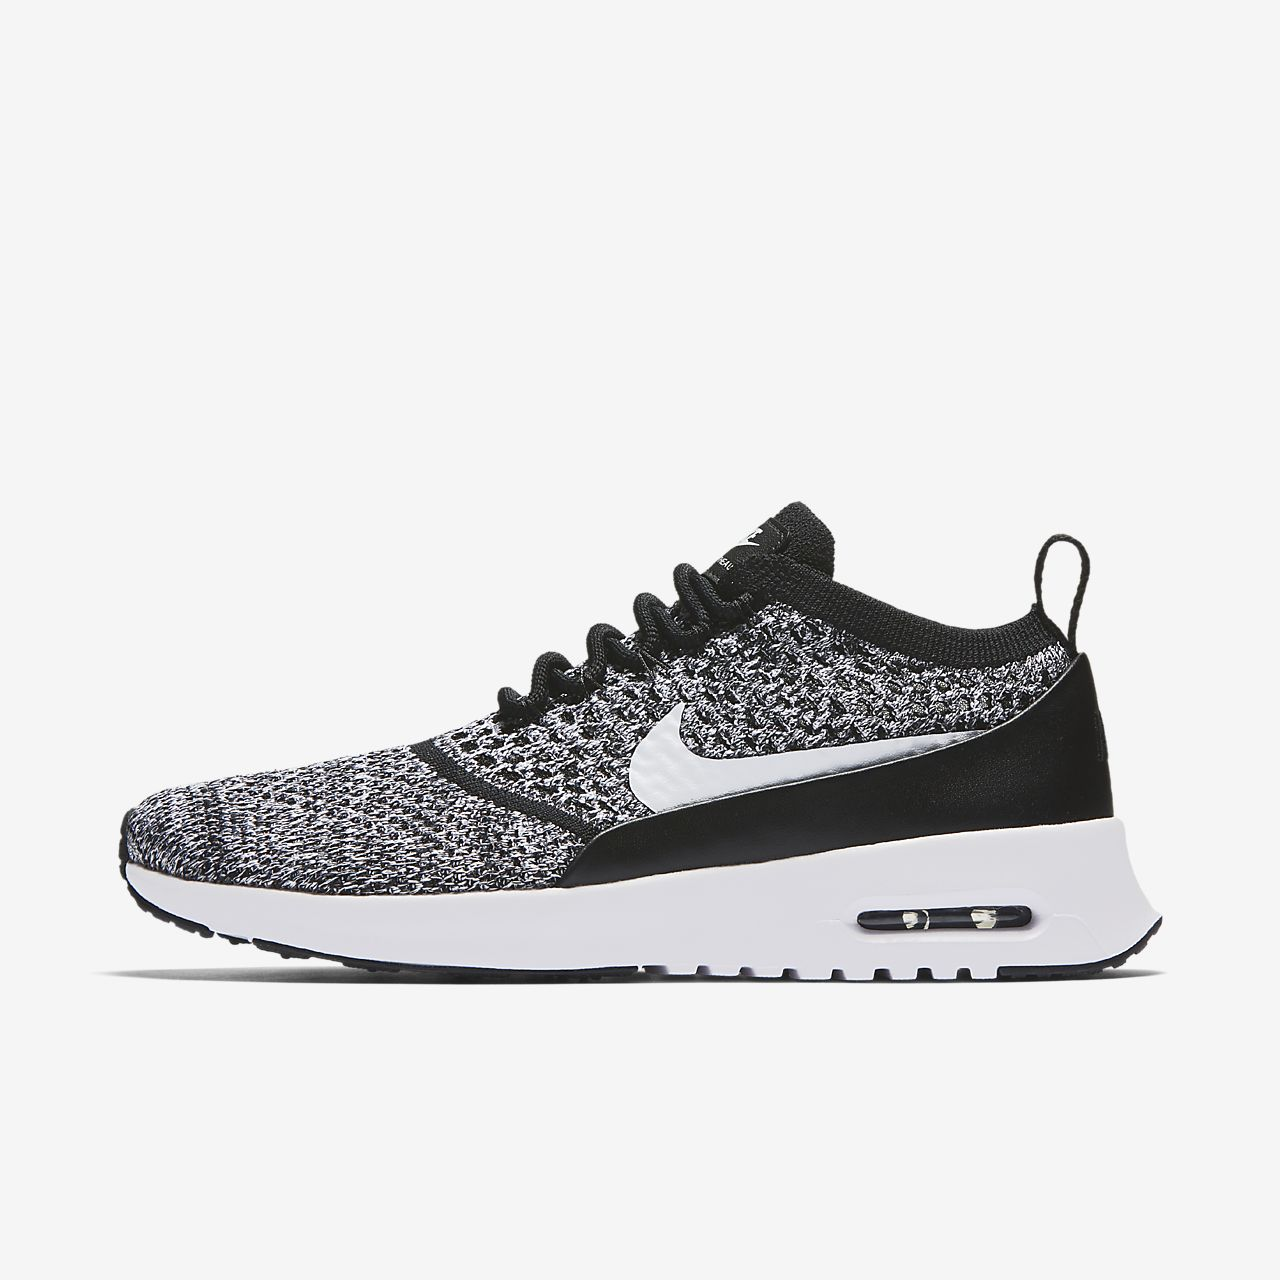 nike air max thea ultra flyknit women 39 s shoe. Black Bedroom Furniture Sets. Home Design Ideas